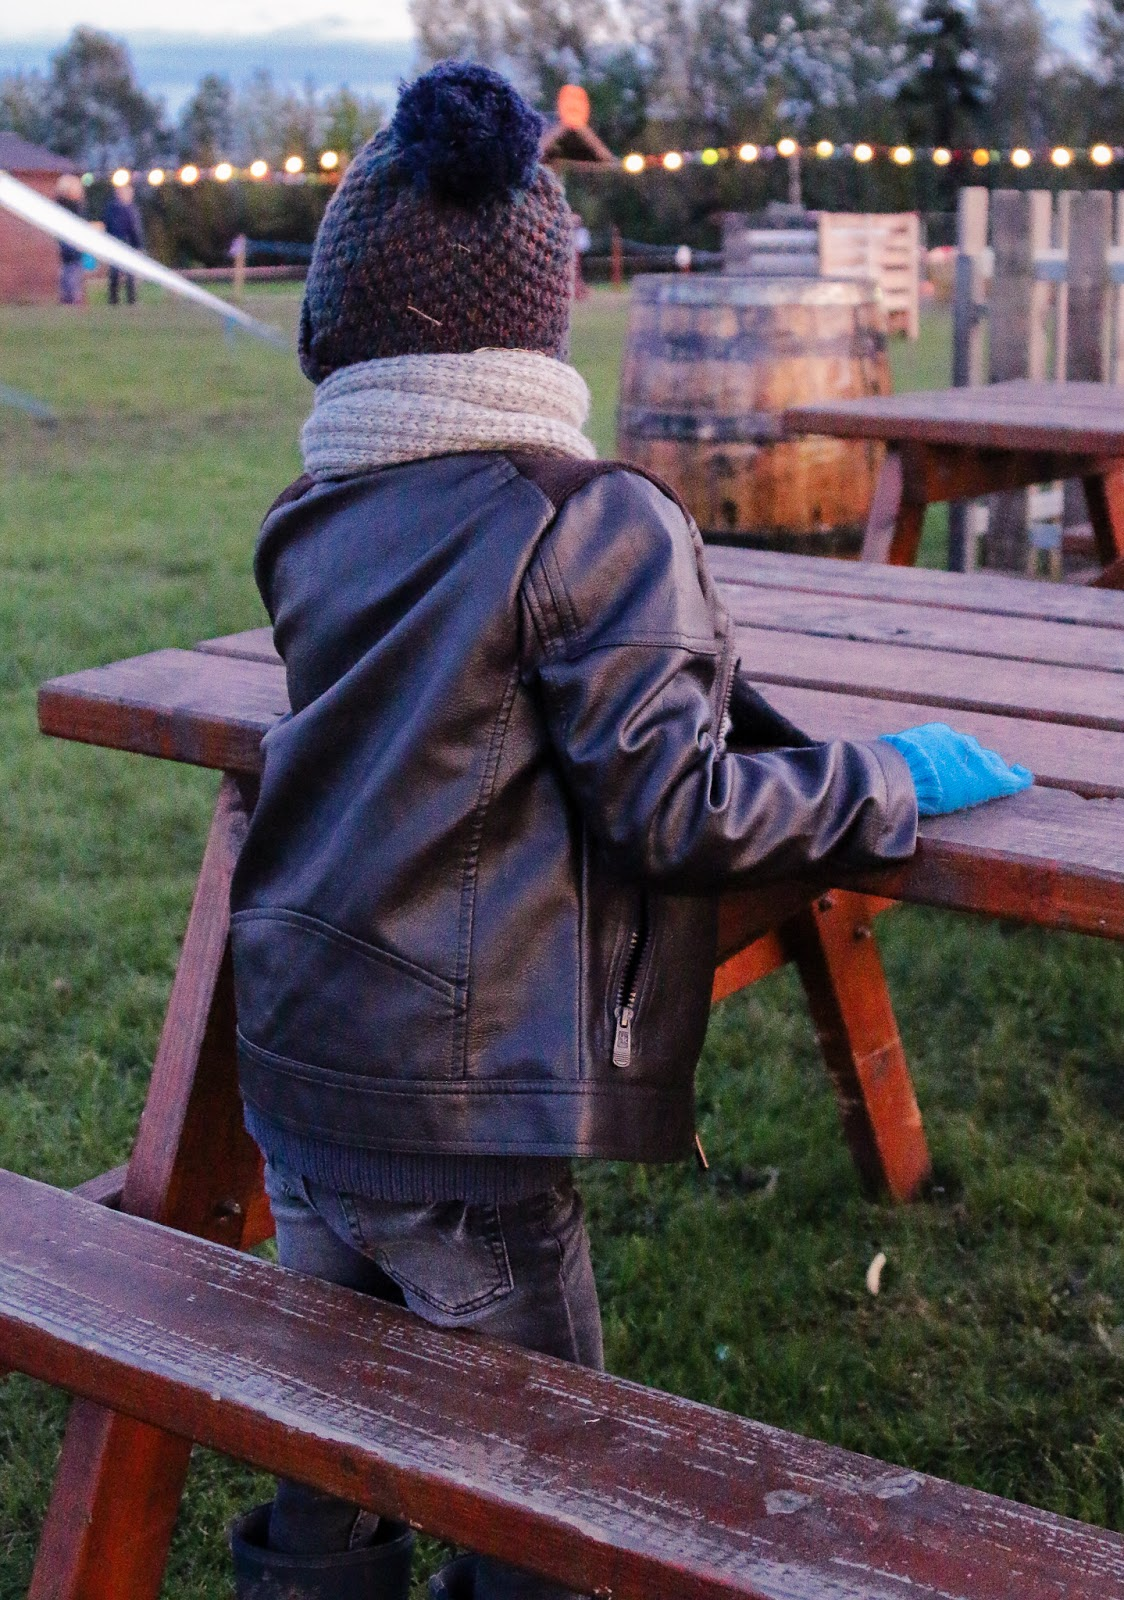 A photo from behind of Little bear sitting on a brown picnic table at M&D's Pumpkin festival